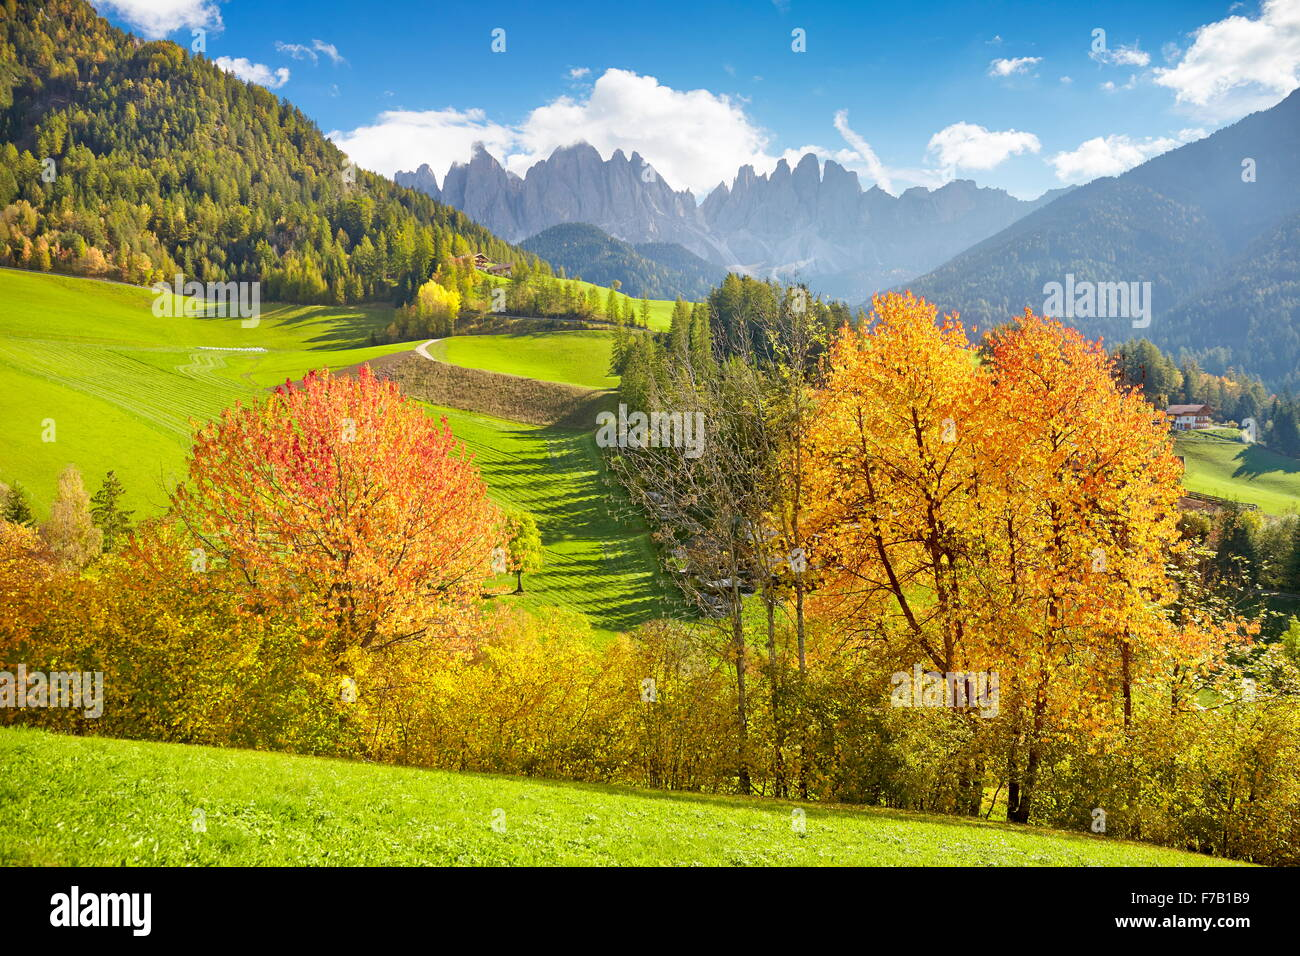 Val Di Funes in autumn colour, Dolomites Mountains, Tyrol, Alps, Italy Stock Photo